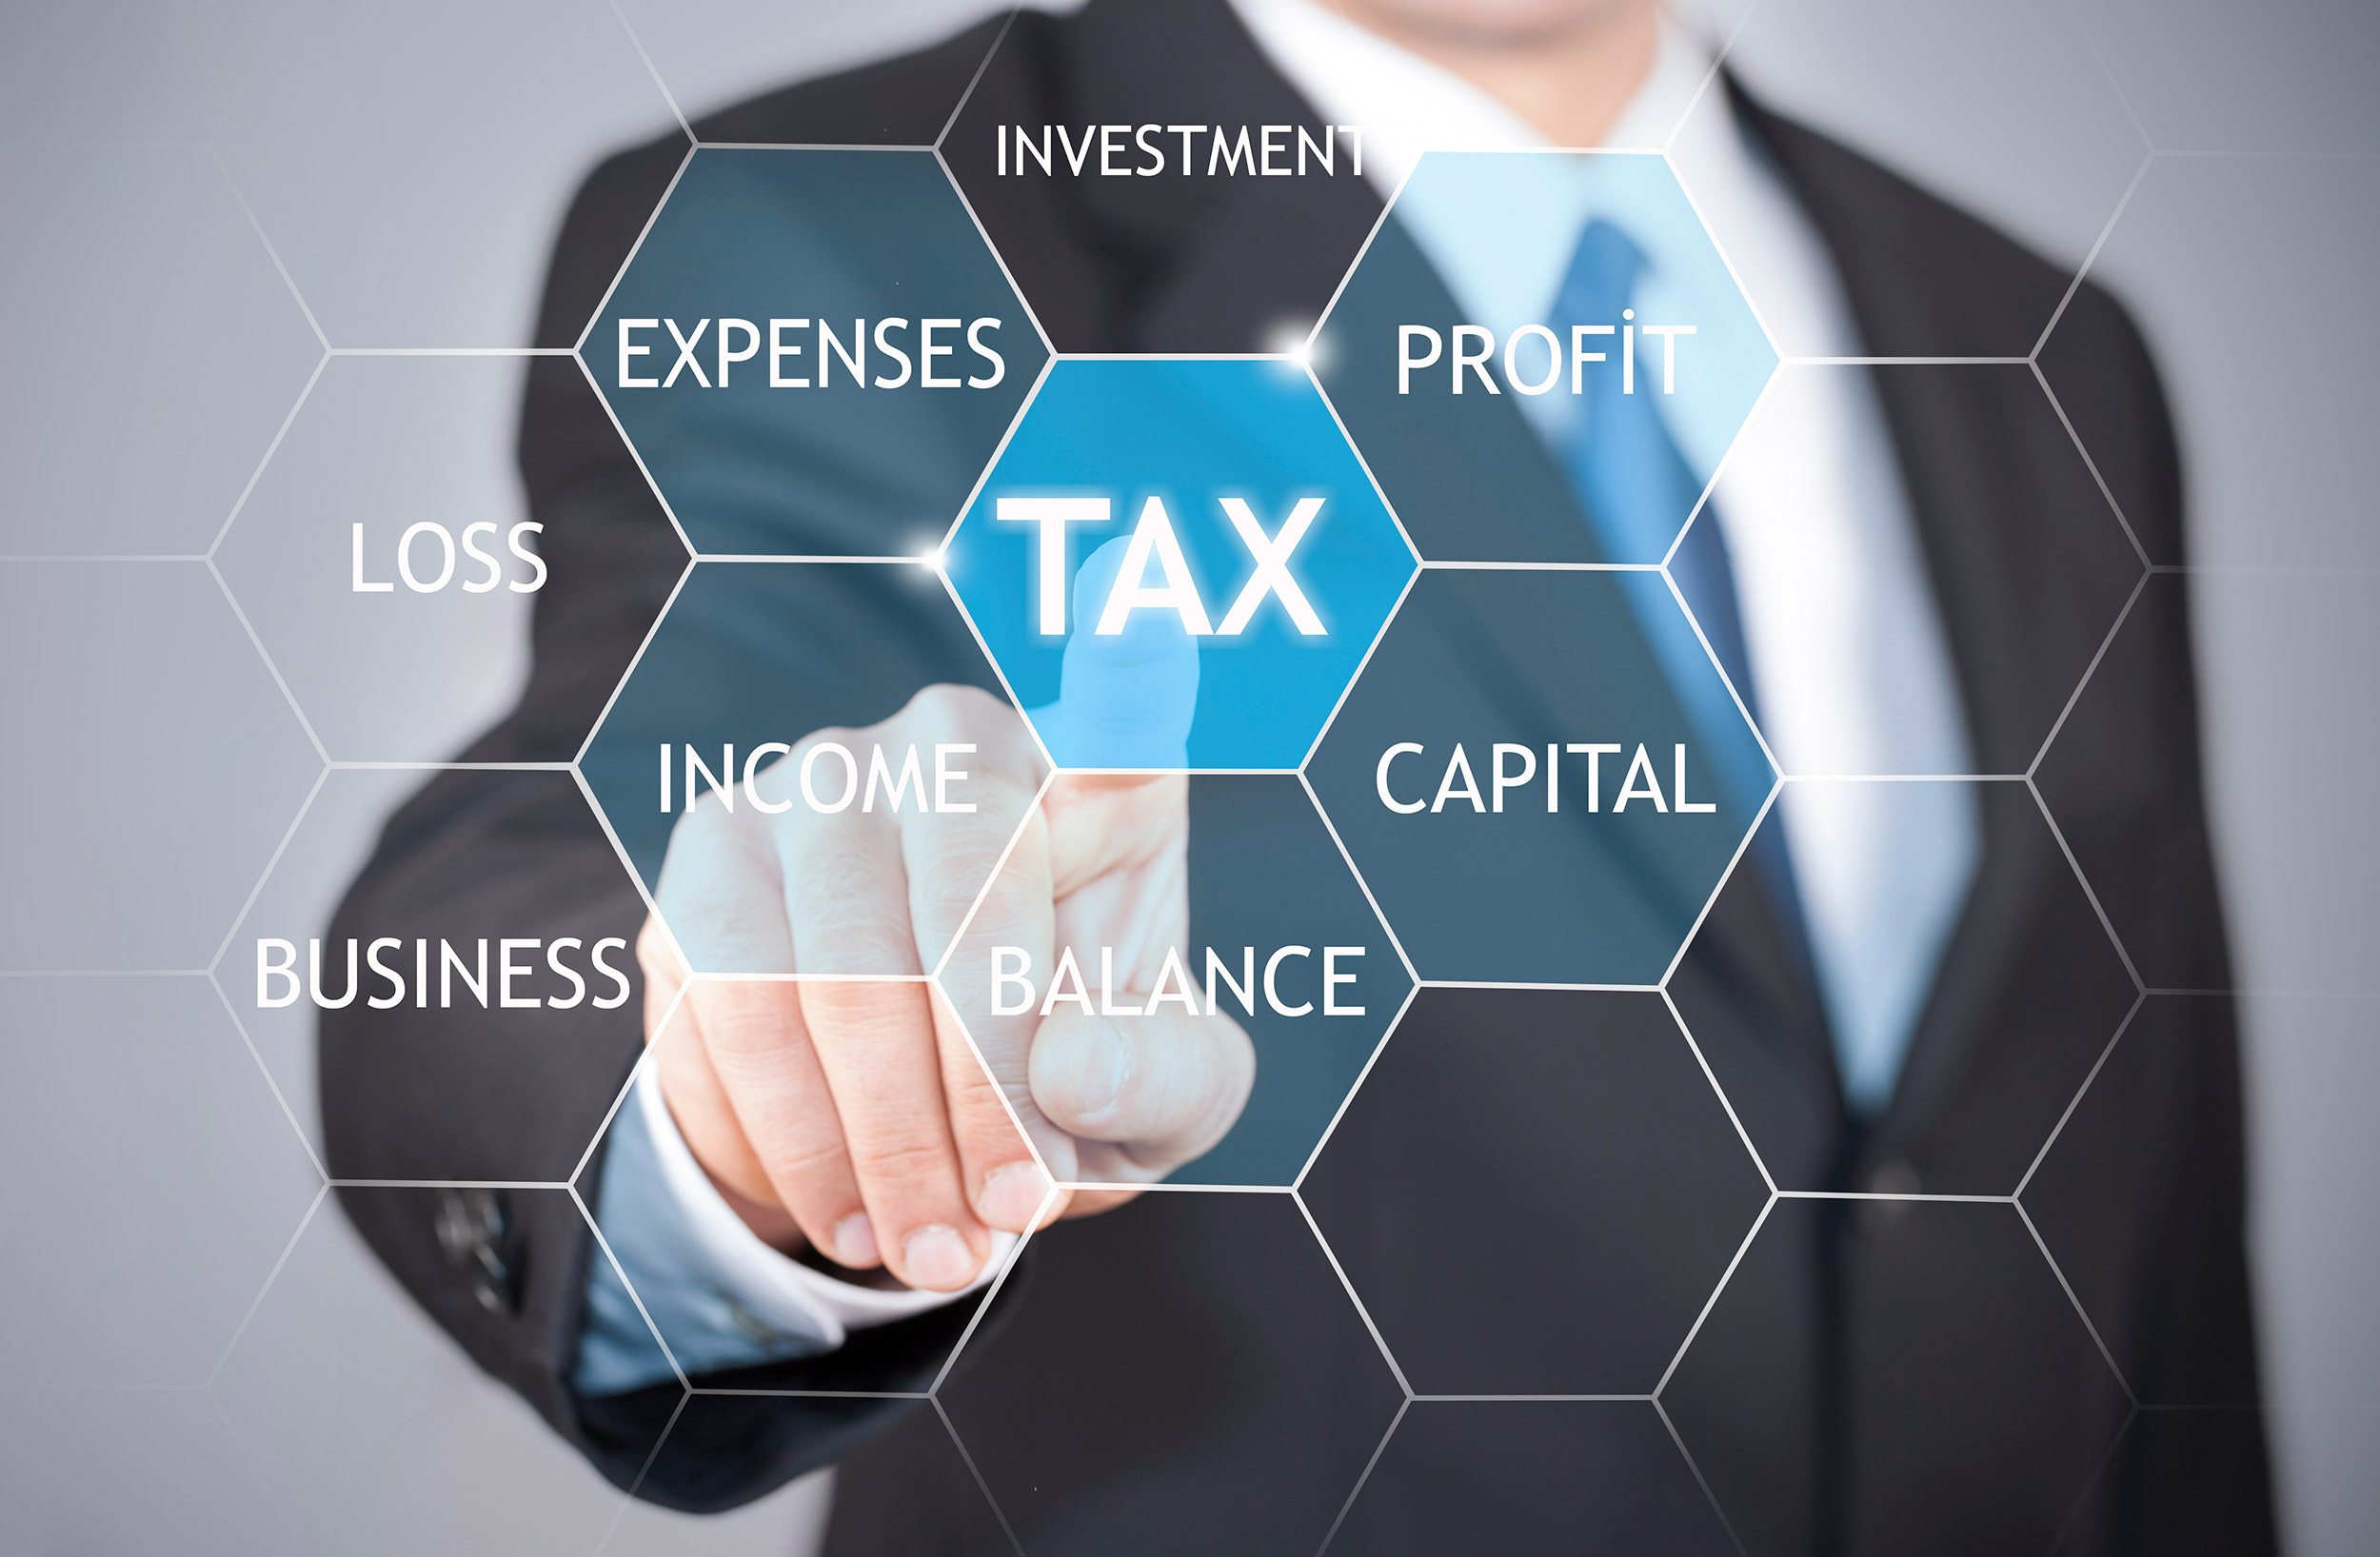 New-for-Tax-Advice-and-Planning-Page---expatriate-tax-australia-526553542.jpg